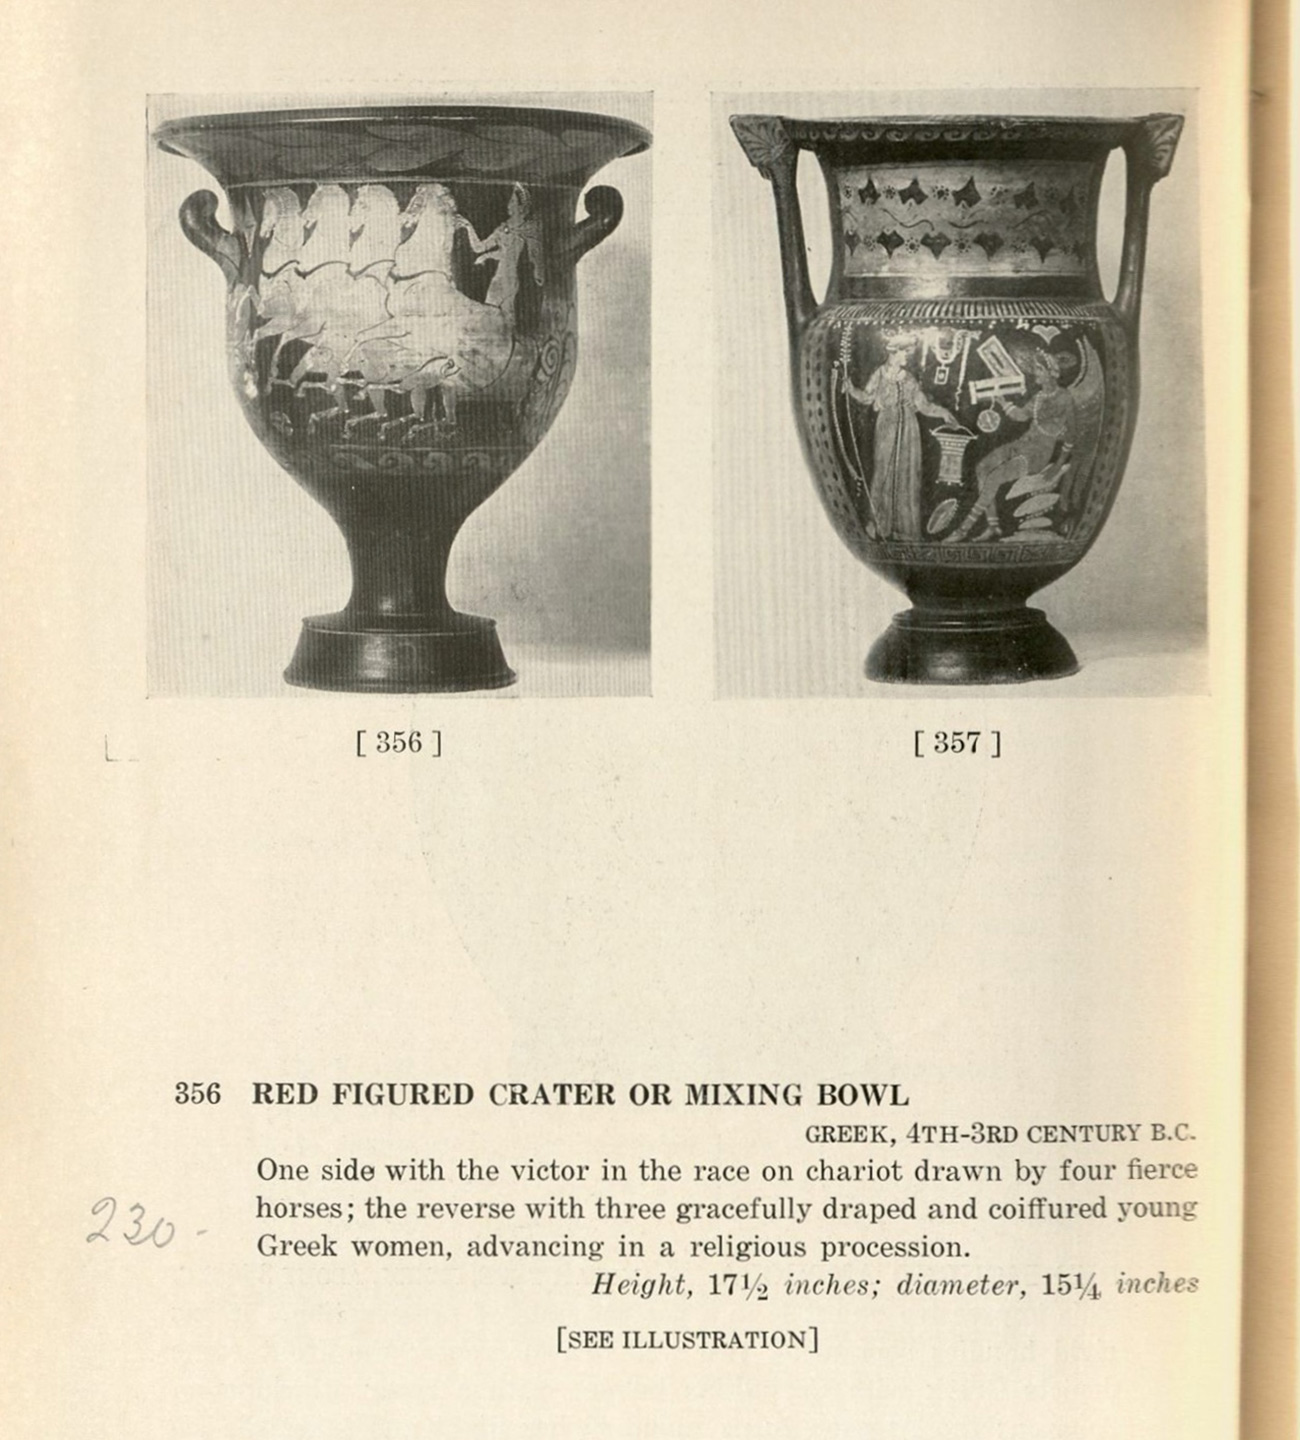 Scan of a page from a 1925 auction catalog showing the front and back of an ancient Greek vase